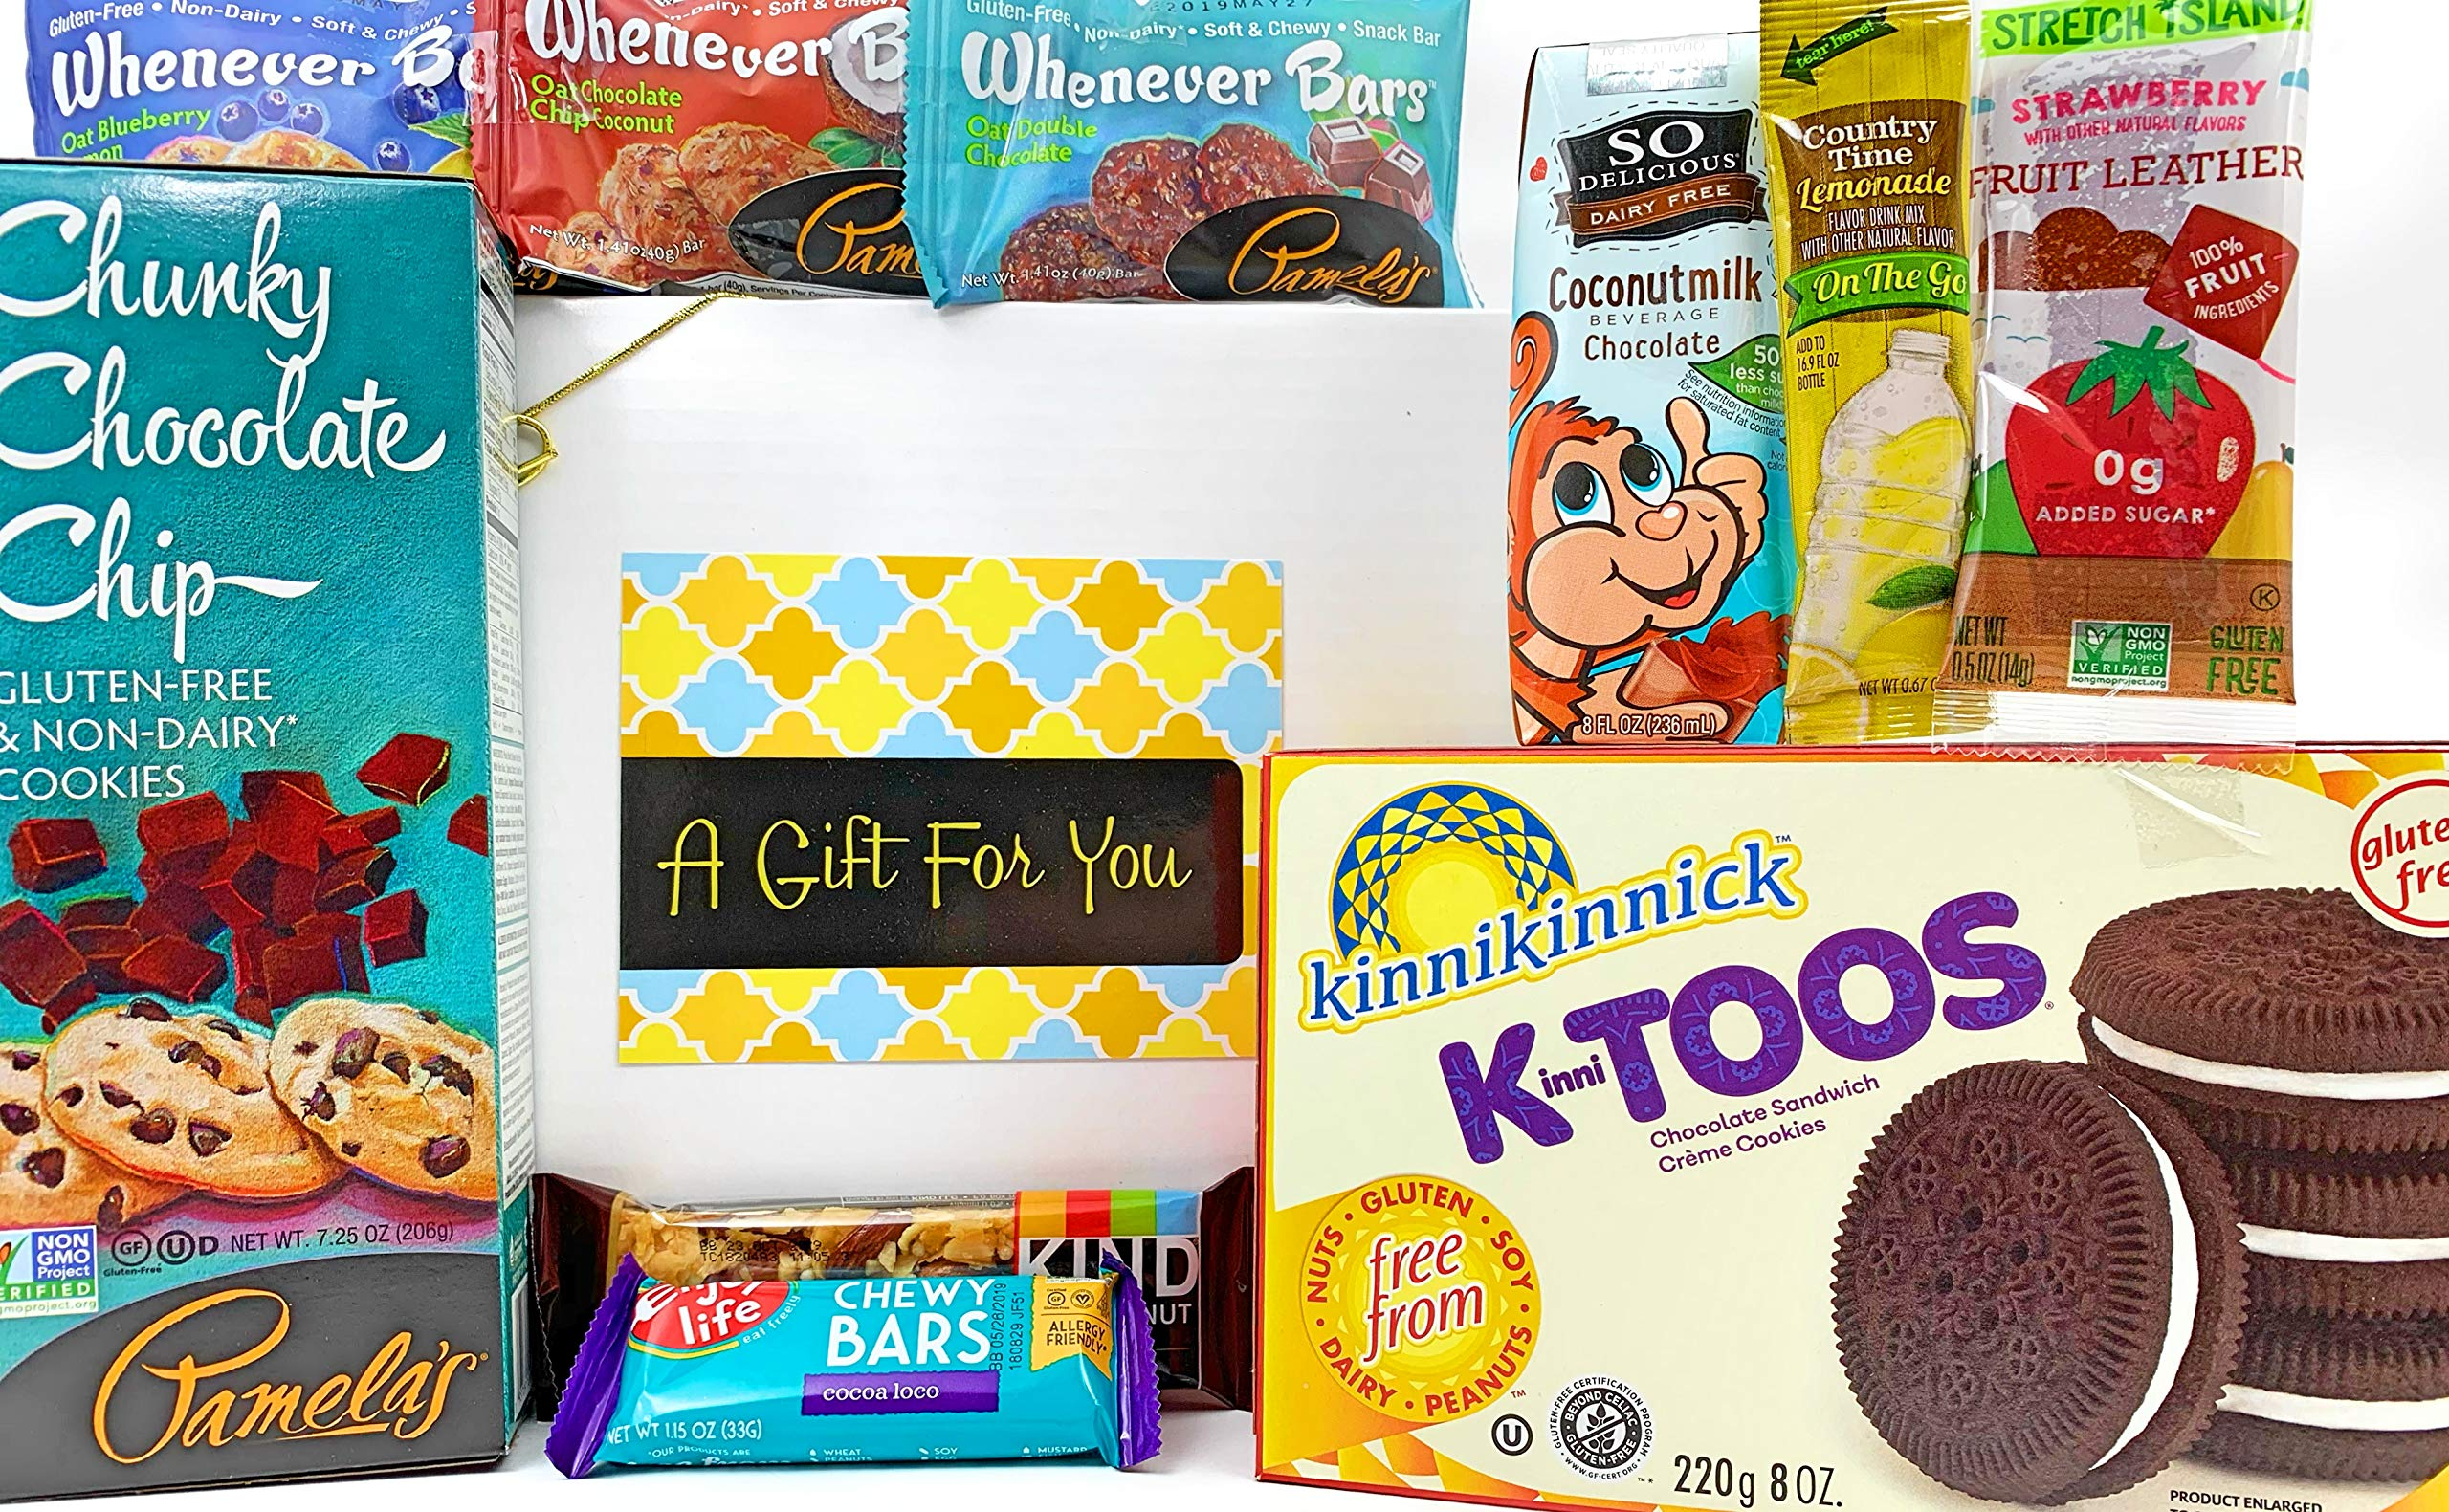 Gluten Free Dairy Free Prime Gift Box Basket - Yummy Treats - Almost 2.5 Pounds - Birthday College Military Care Package Get Well Christmas Valentine's Easter Mother's Day Father's Day